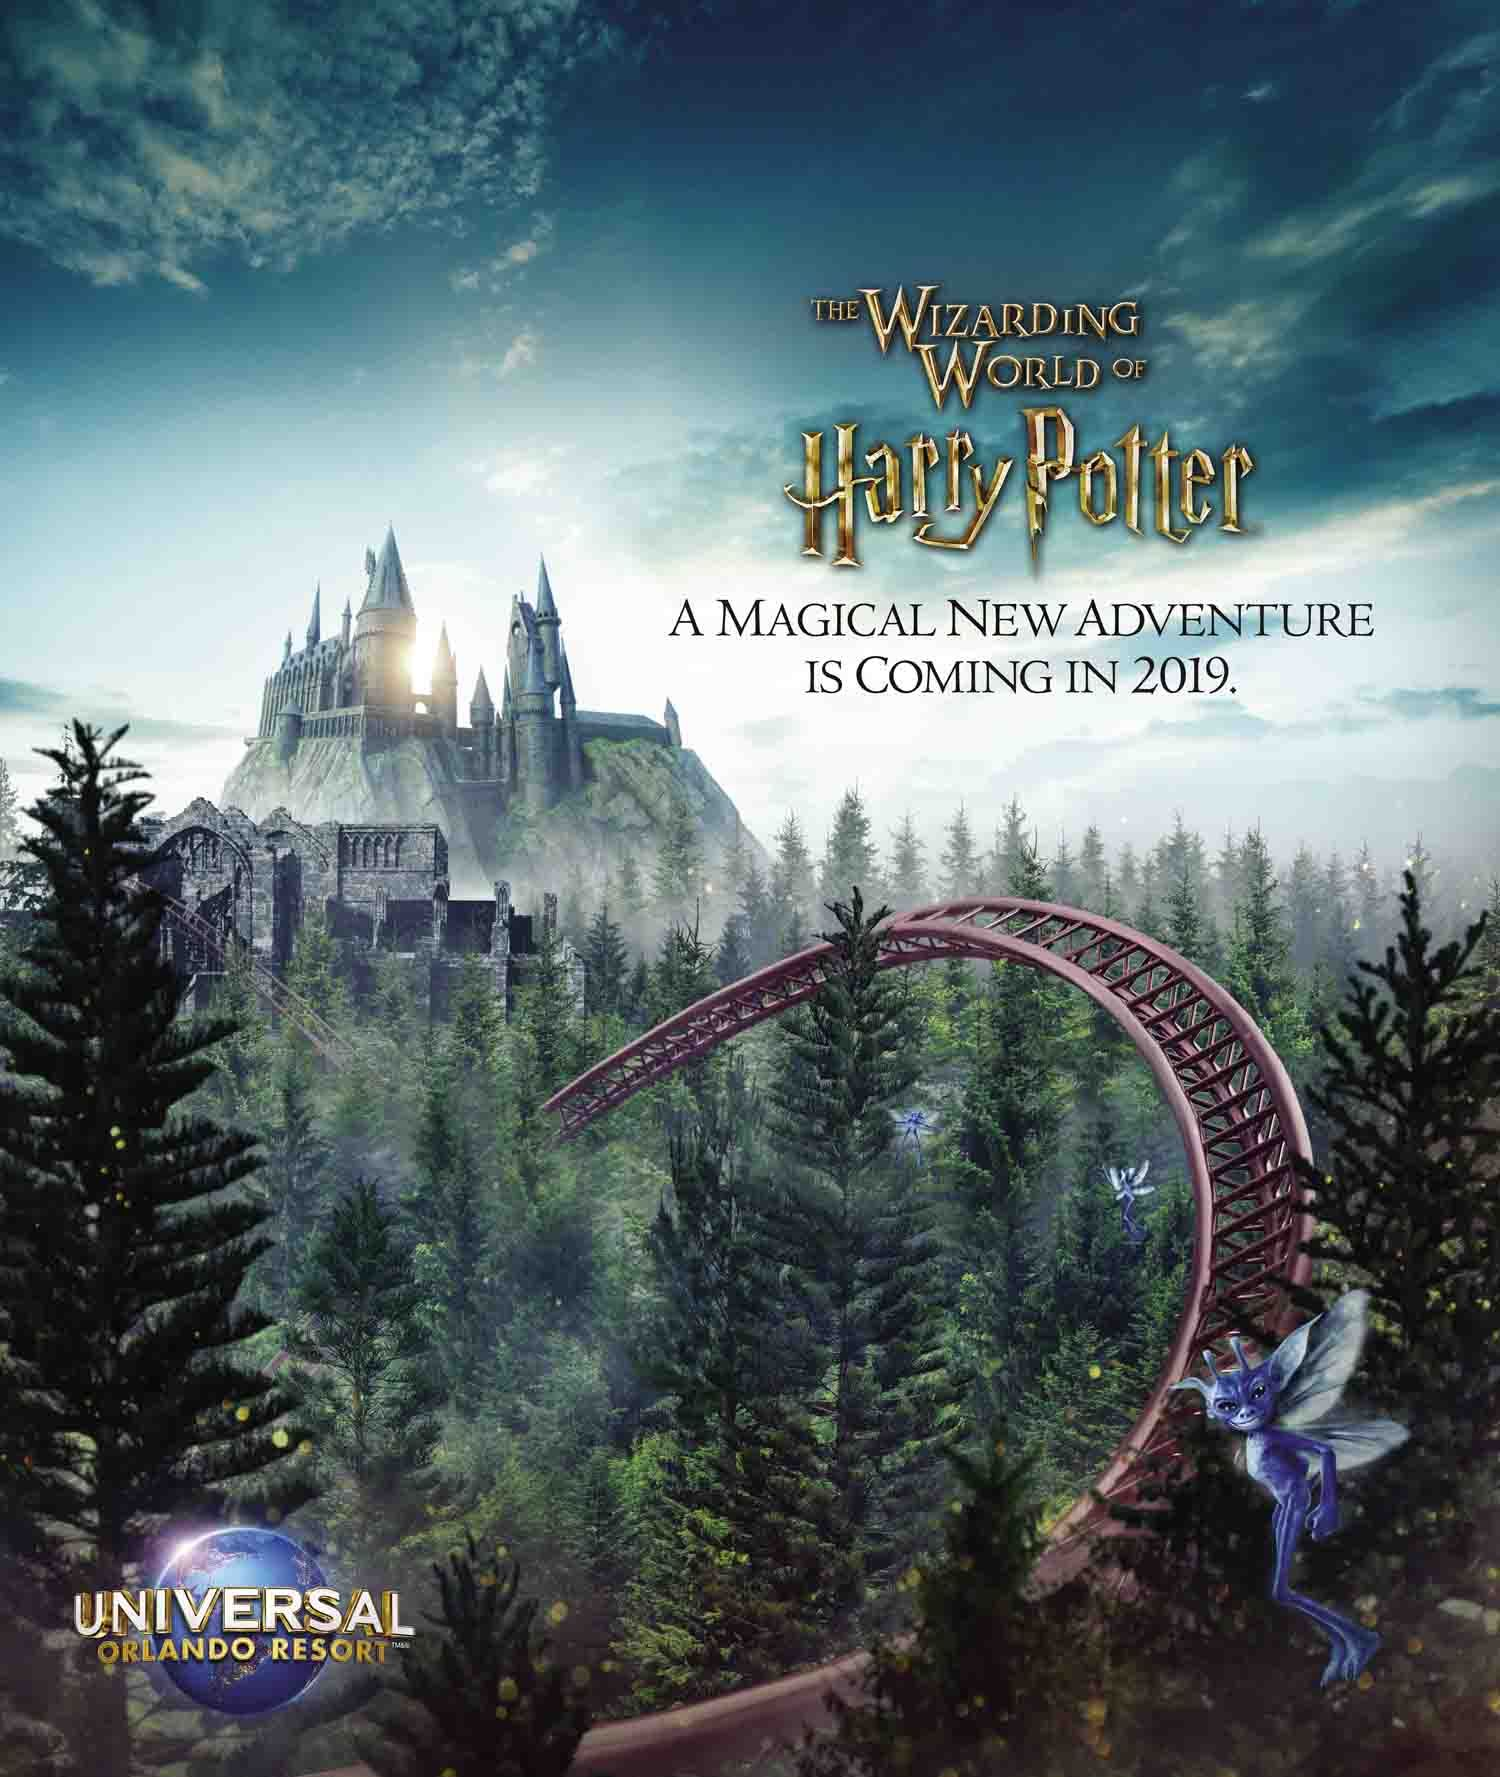 Harry Potter Muppets: New Harry Potter Ride For Wizarding World Orlando Teased